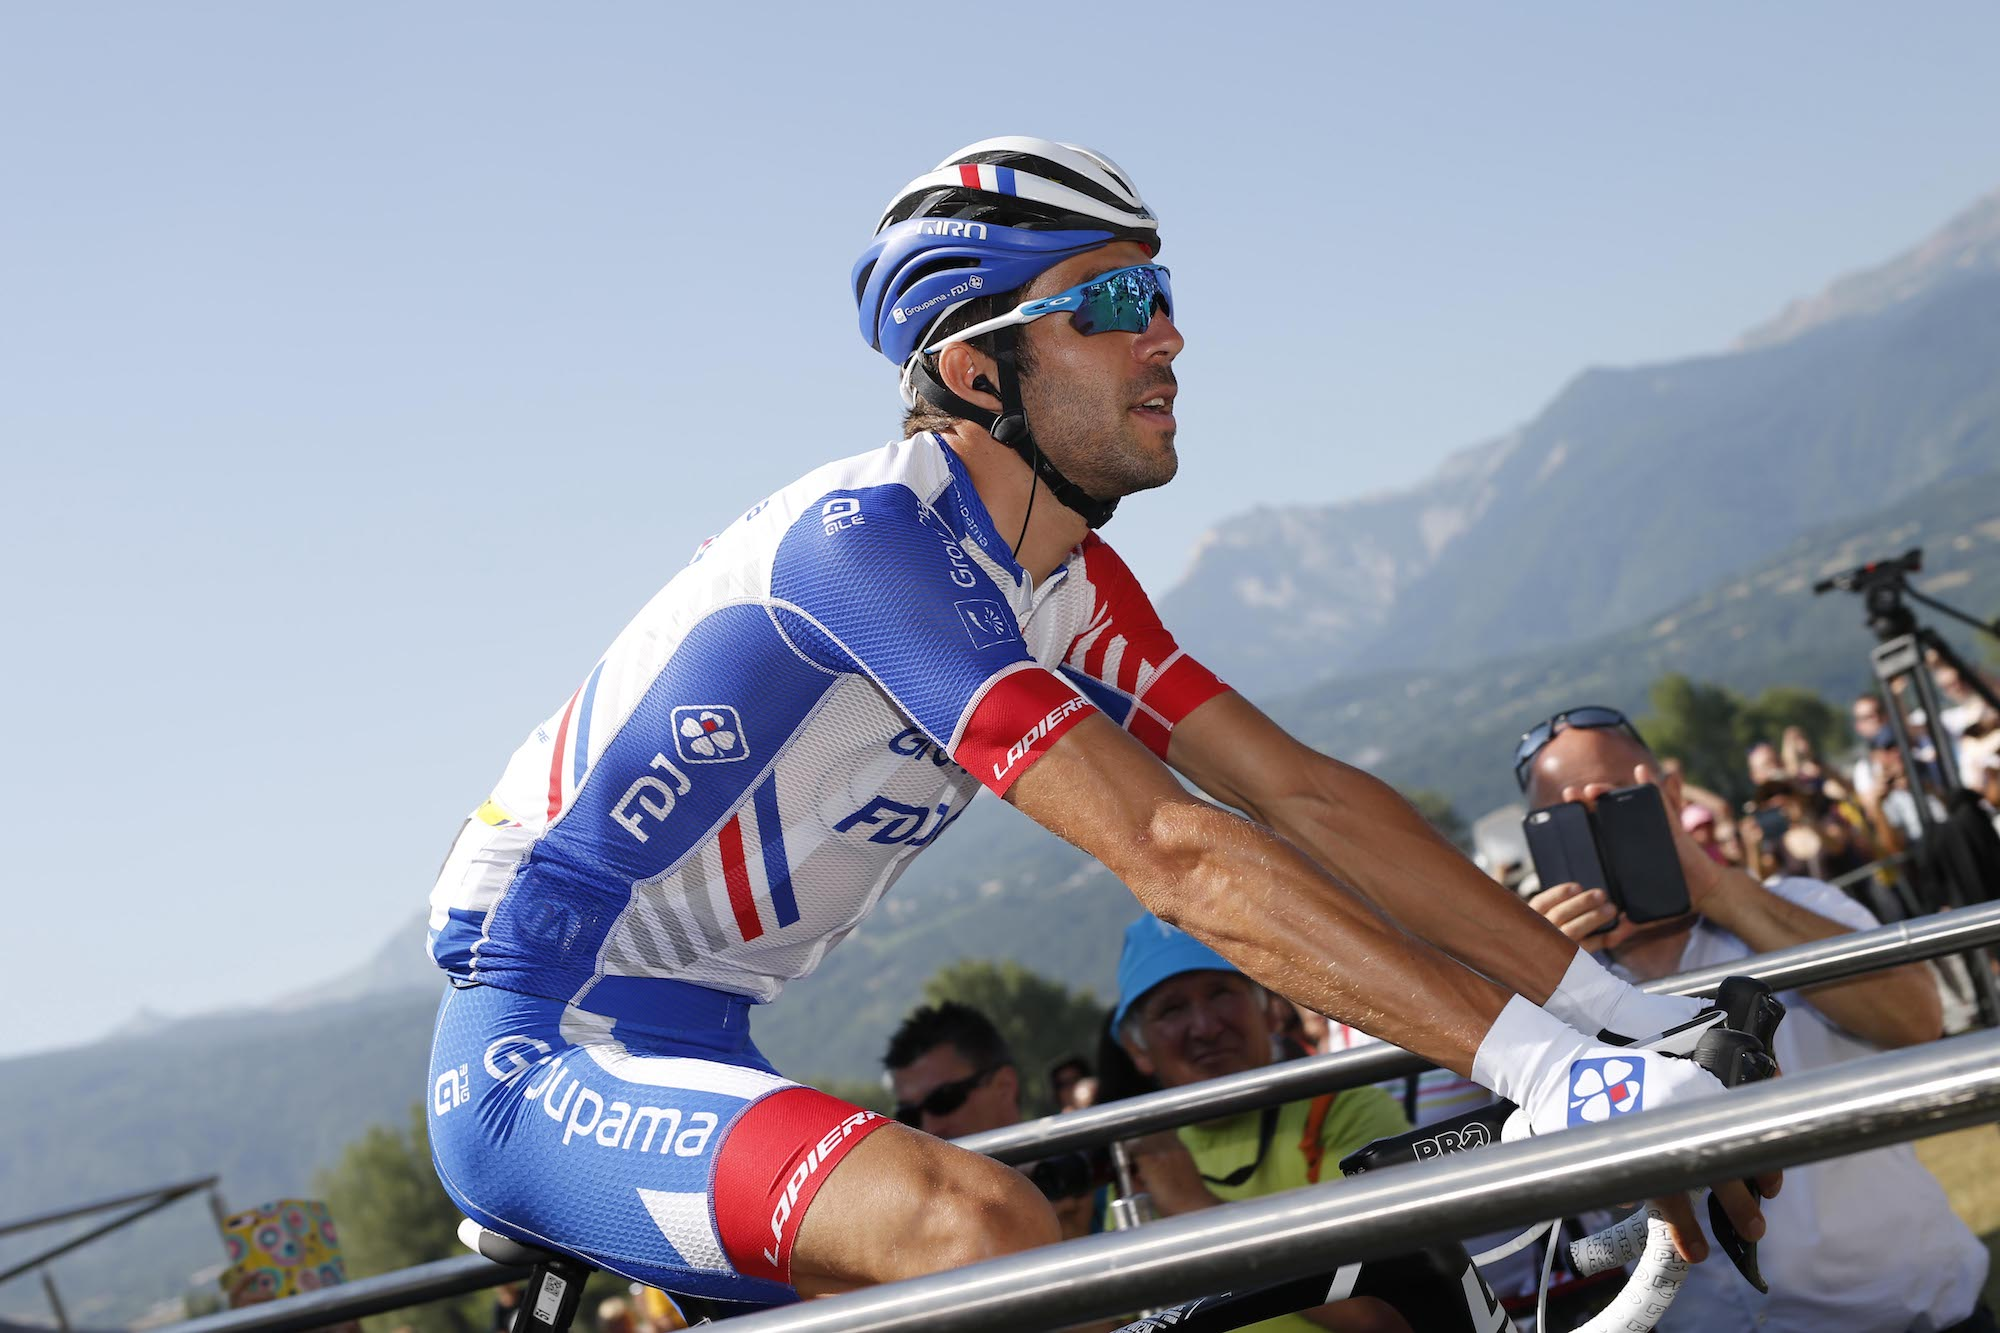 Thibaut Pinot forced to spend three weeks off the bike after Tour de France abandon